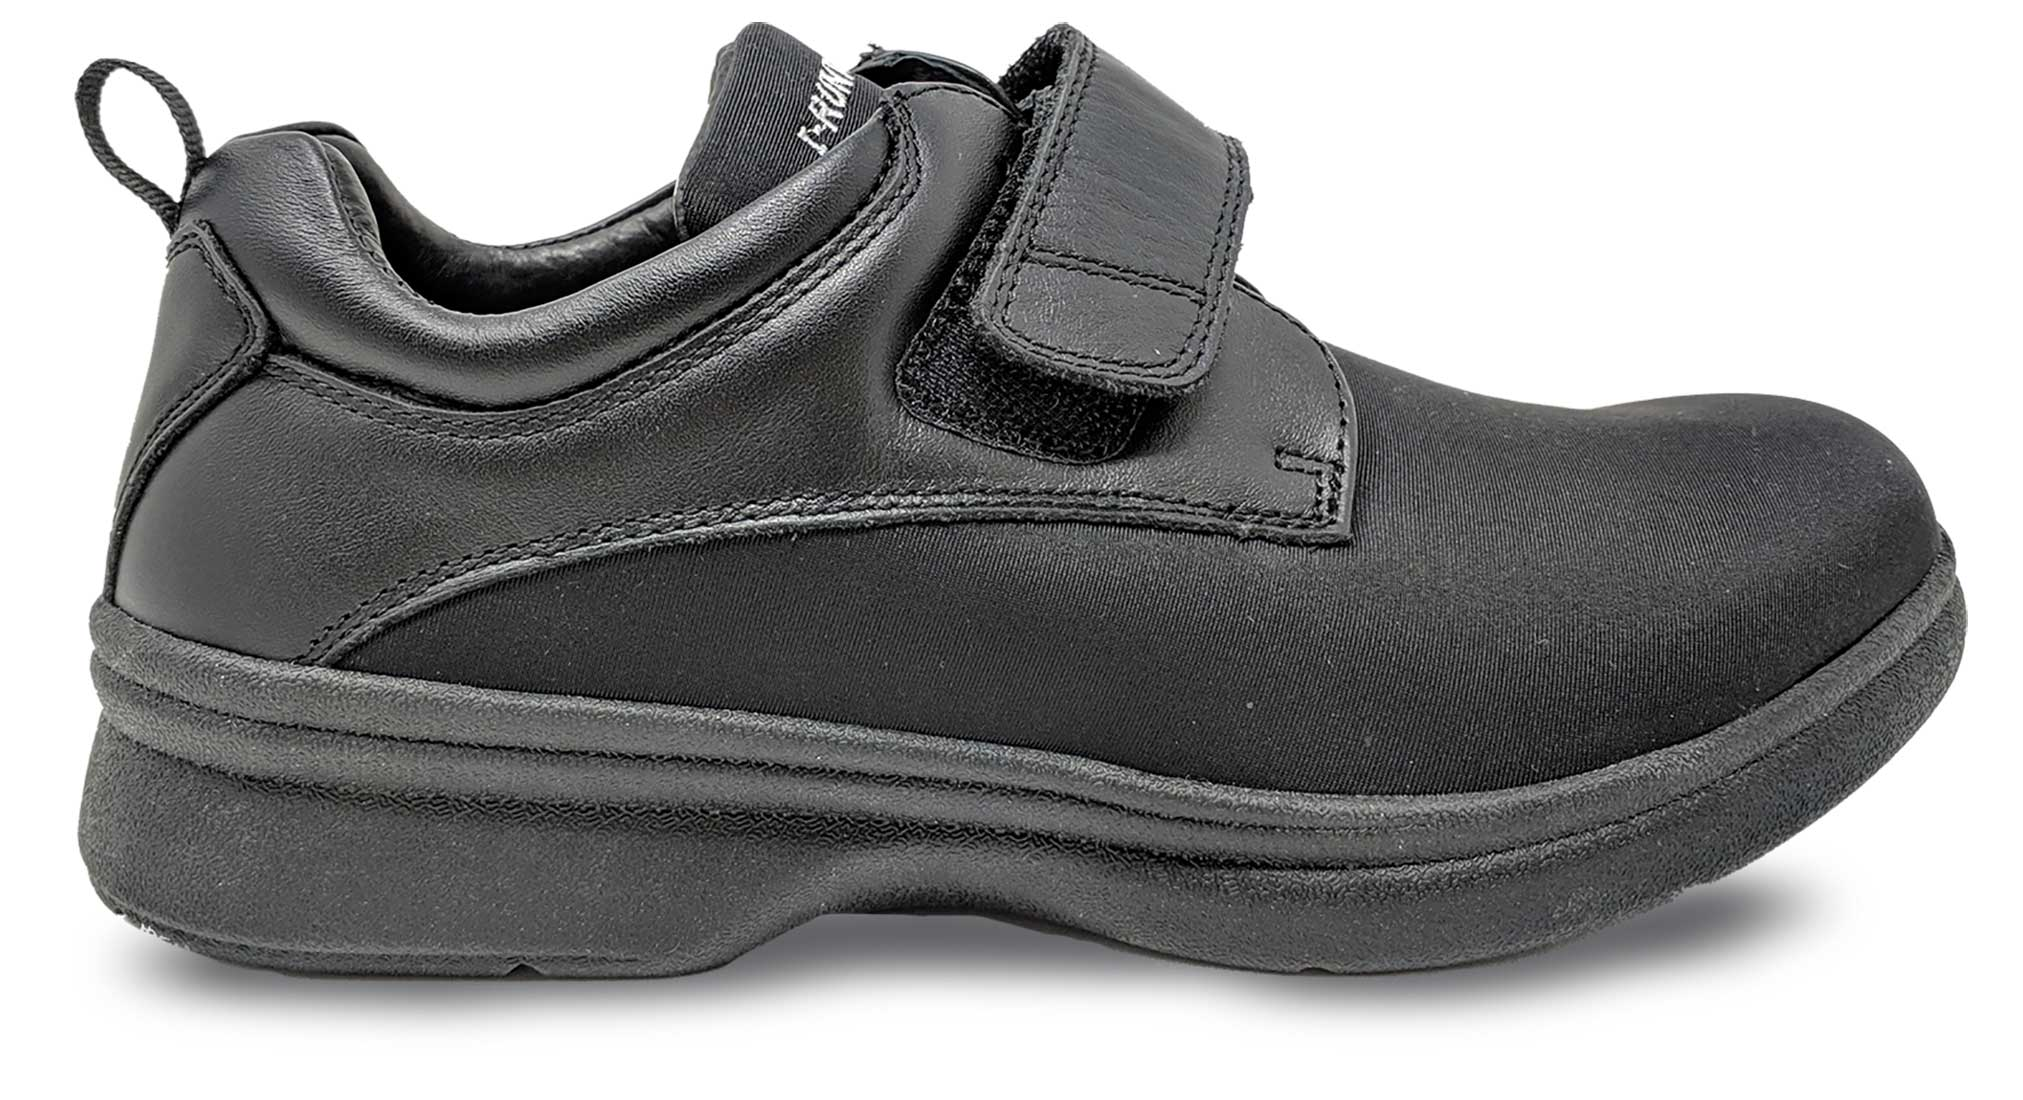 I Runner Shoes Healer Comfort Shoe Extremely Comfortable Therapeutic Orthopedic And Diabetic Shoe